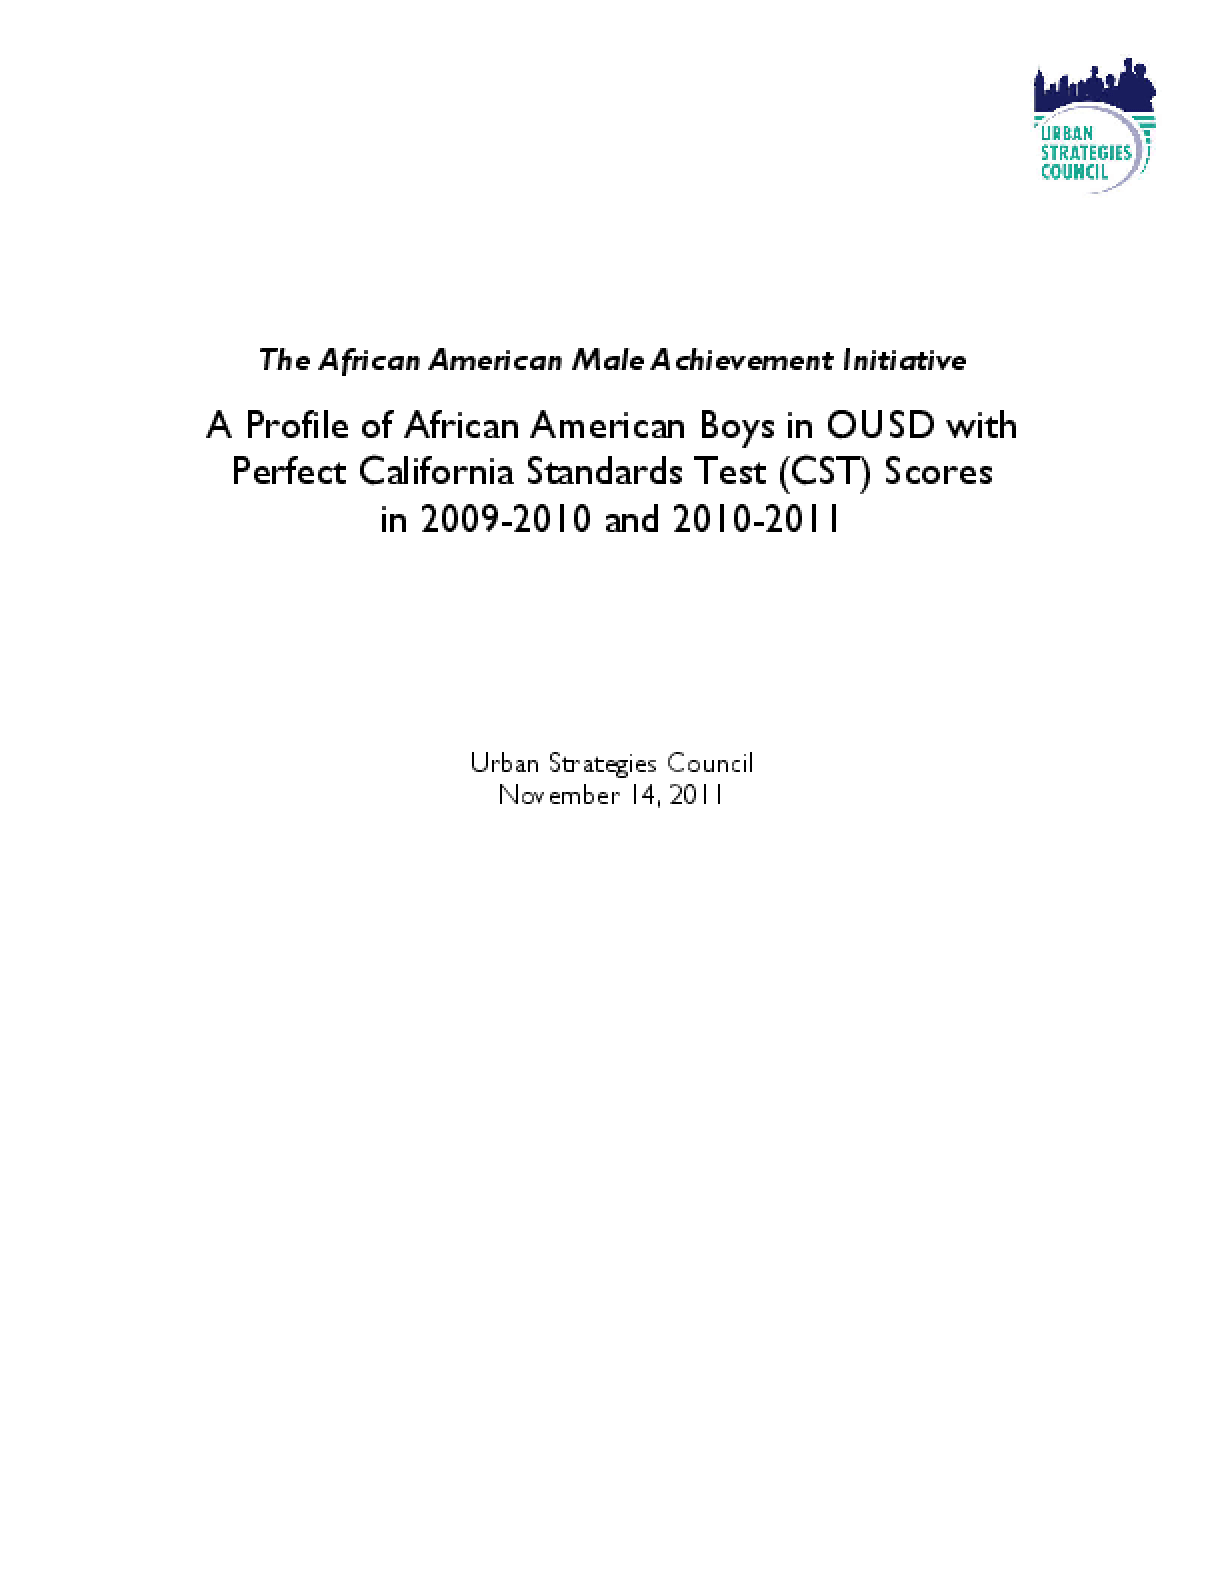 A Profile of African American Boys in OUSD with Perfect California Standards Test (CST) Scores in 2009-2010 and 2010-2011